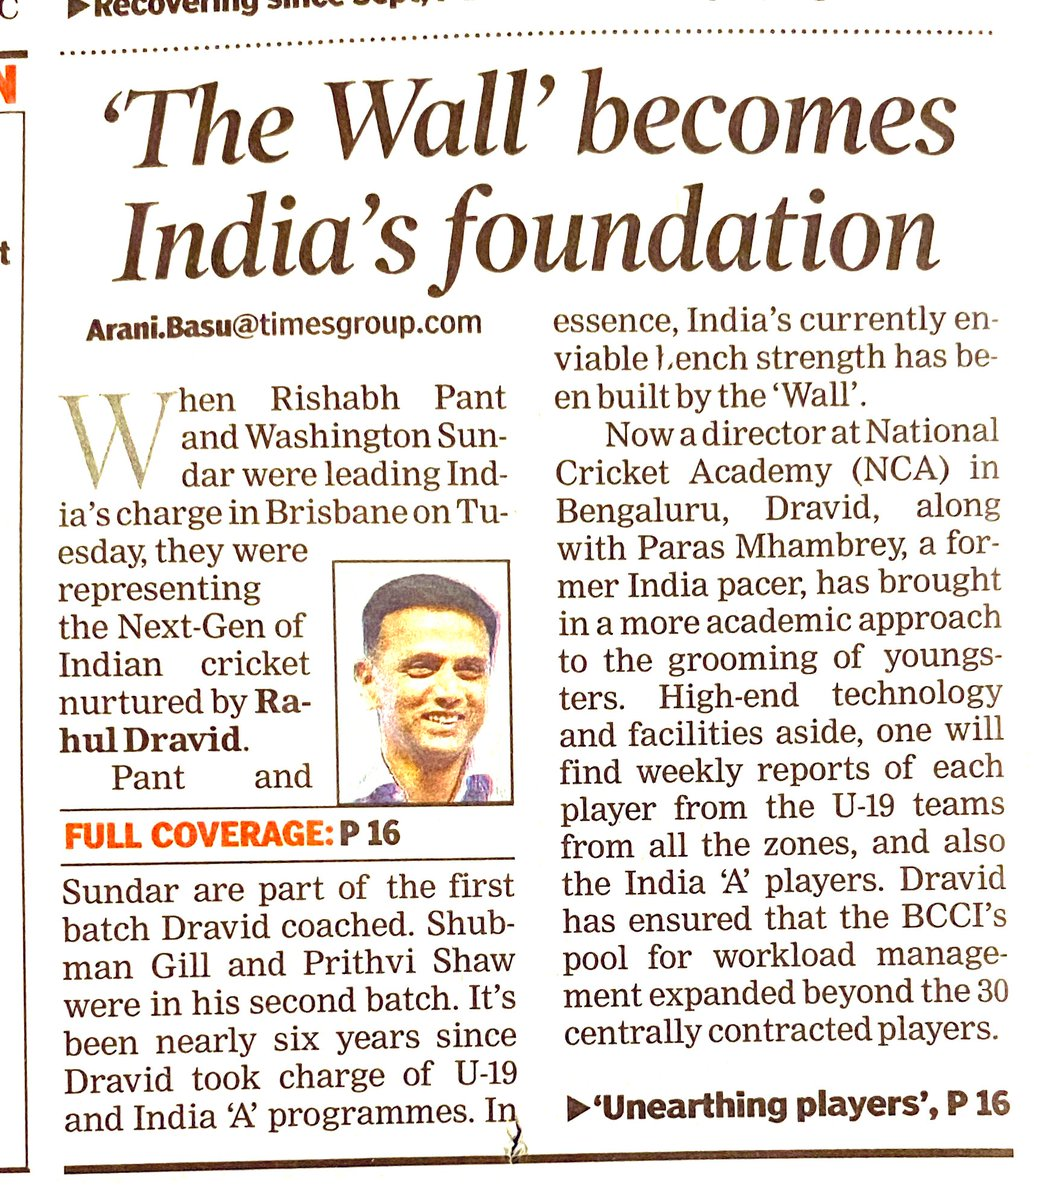 Our real hero!  #Respect #RahulDravid #TheWall #GOAT  Teach them young, teach them right watch them grow!  #TeamIndia #INDvsAUS #IndiaWins